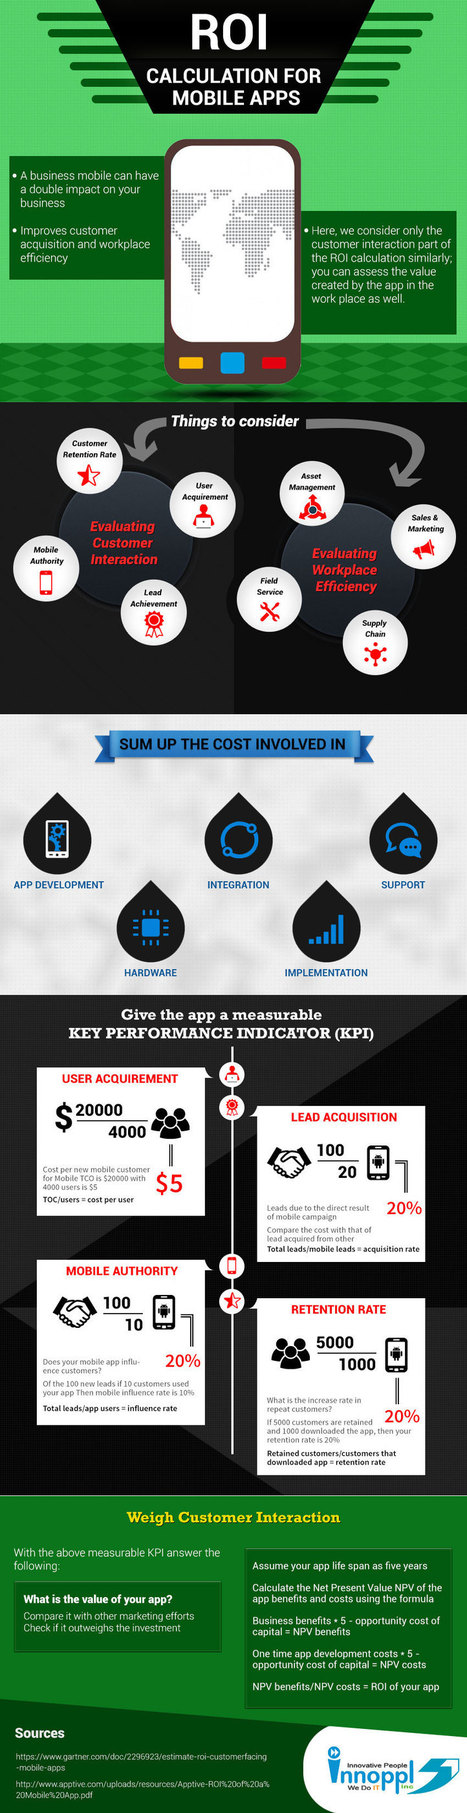 Cálculo del ROI para APPs #infografia #infographic #software | aprender a emprender | Scoop.it